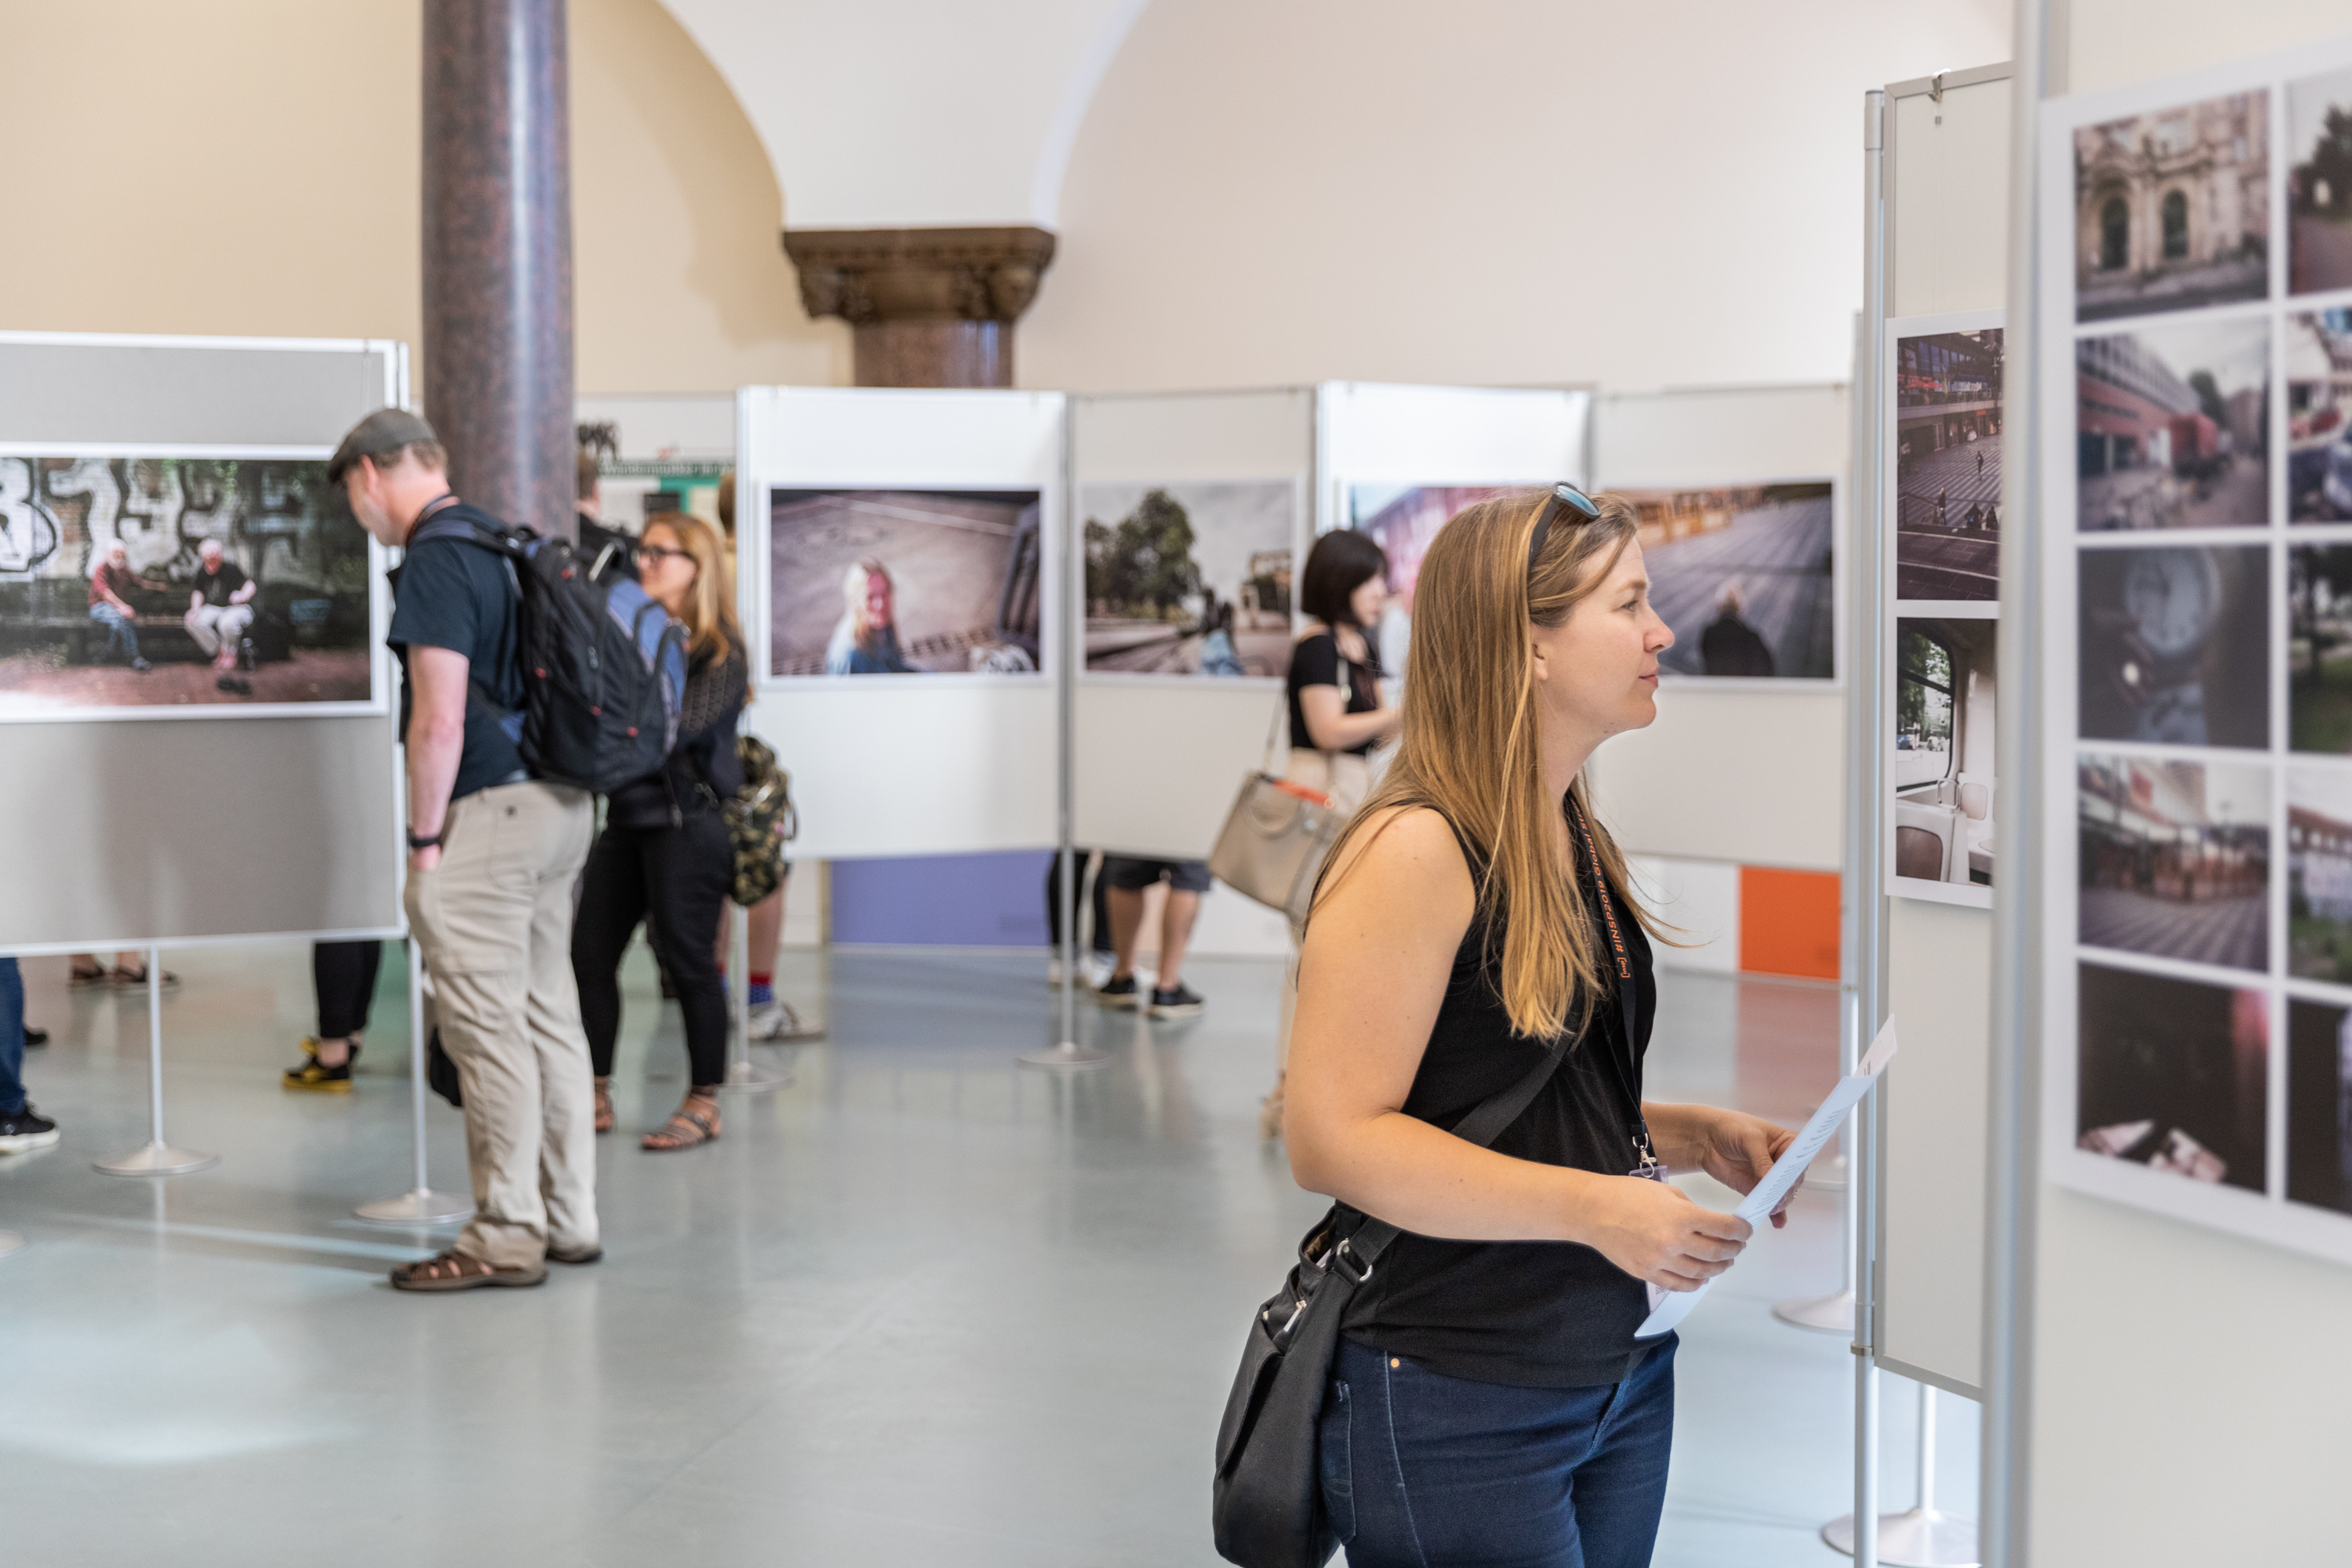 Photo exhibition at the Neues Rathaus during the 2019 Global Street Newspaper Summit in Hannover, Germany 17th June 2019. The summit was co-organised by INSP (International Network of Street Papers) and Asphalt- Hannover street magazine. In 2019 both Aspahlt and INSP celebrate their 25th anniversaries. Credit: Selim Korycki